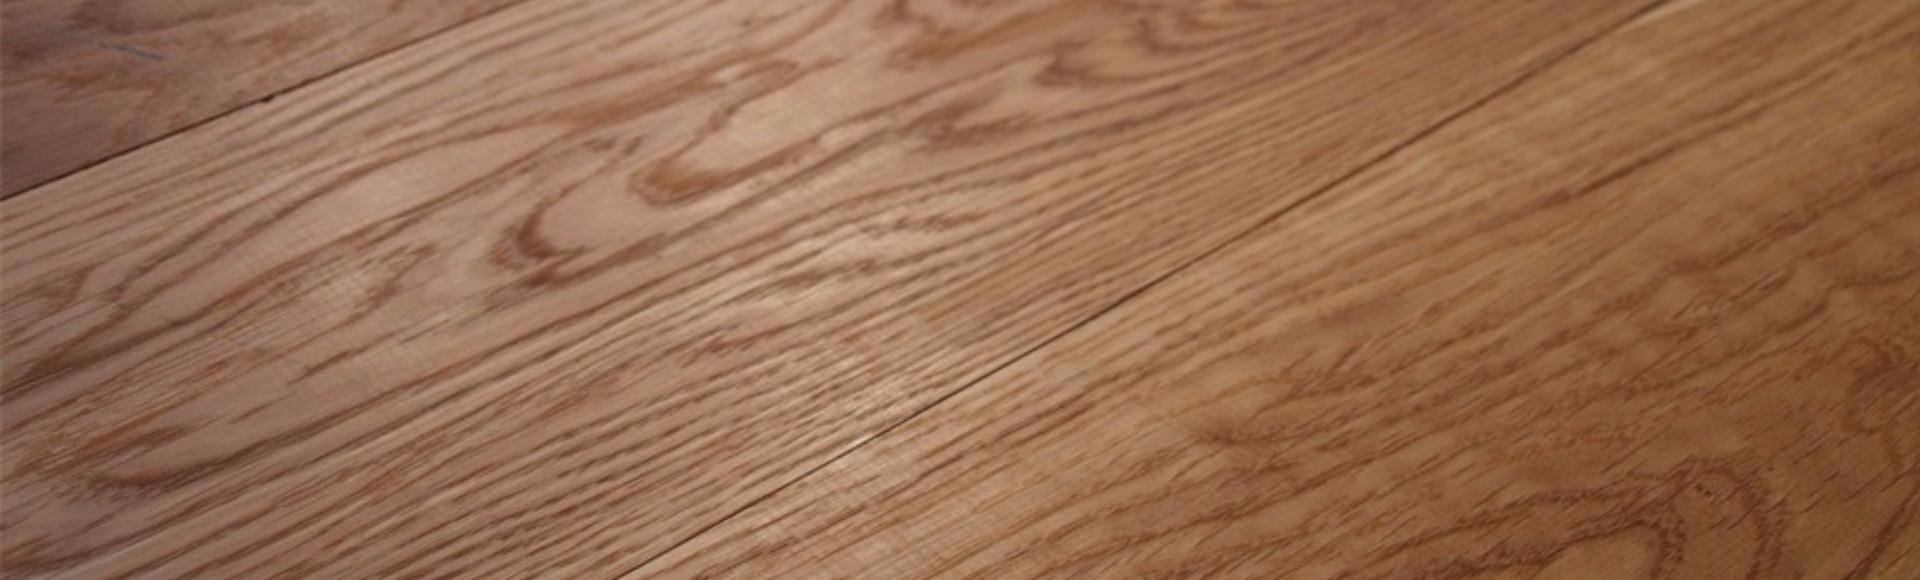 NEW SOLID ENGLISH OAK FLOORING